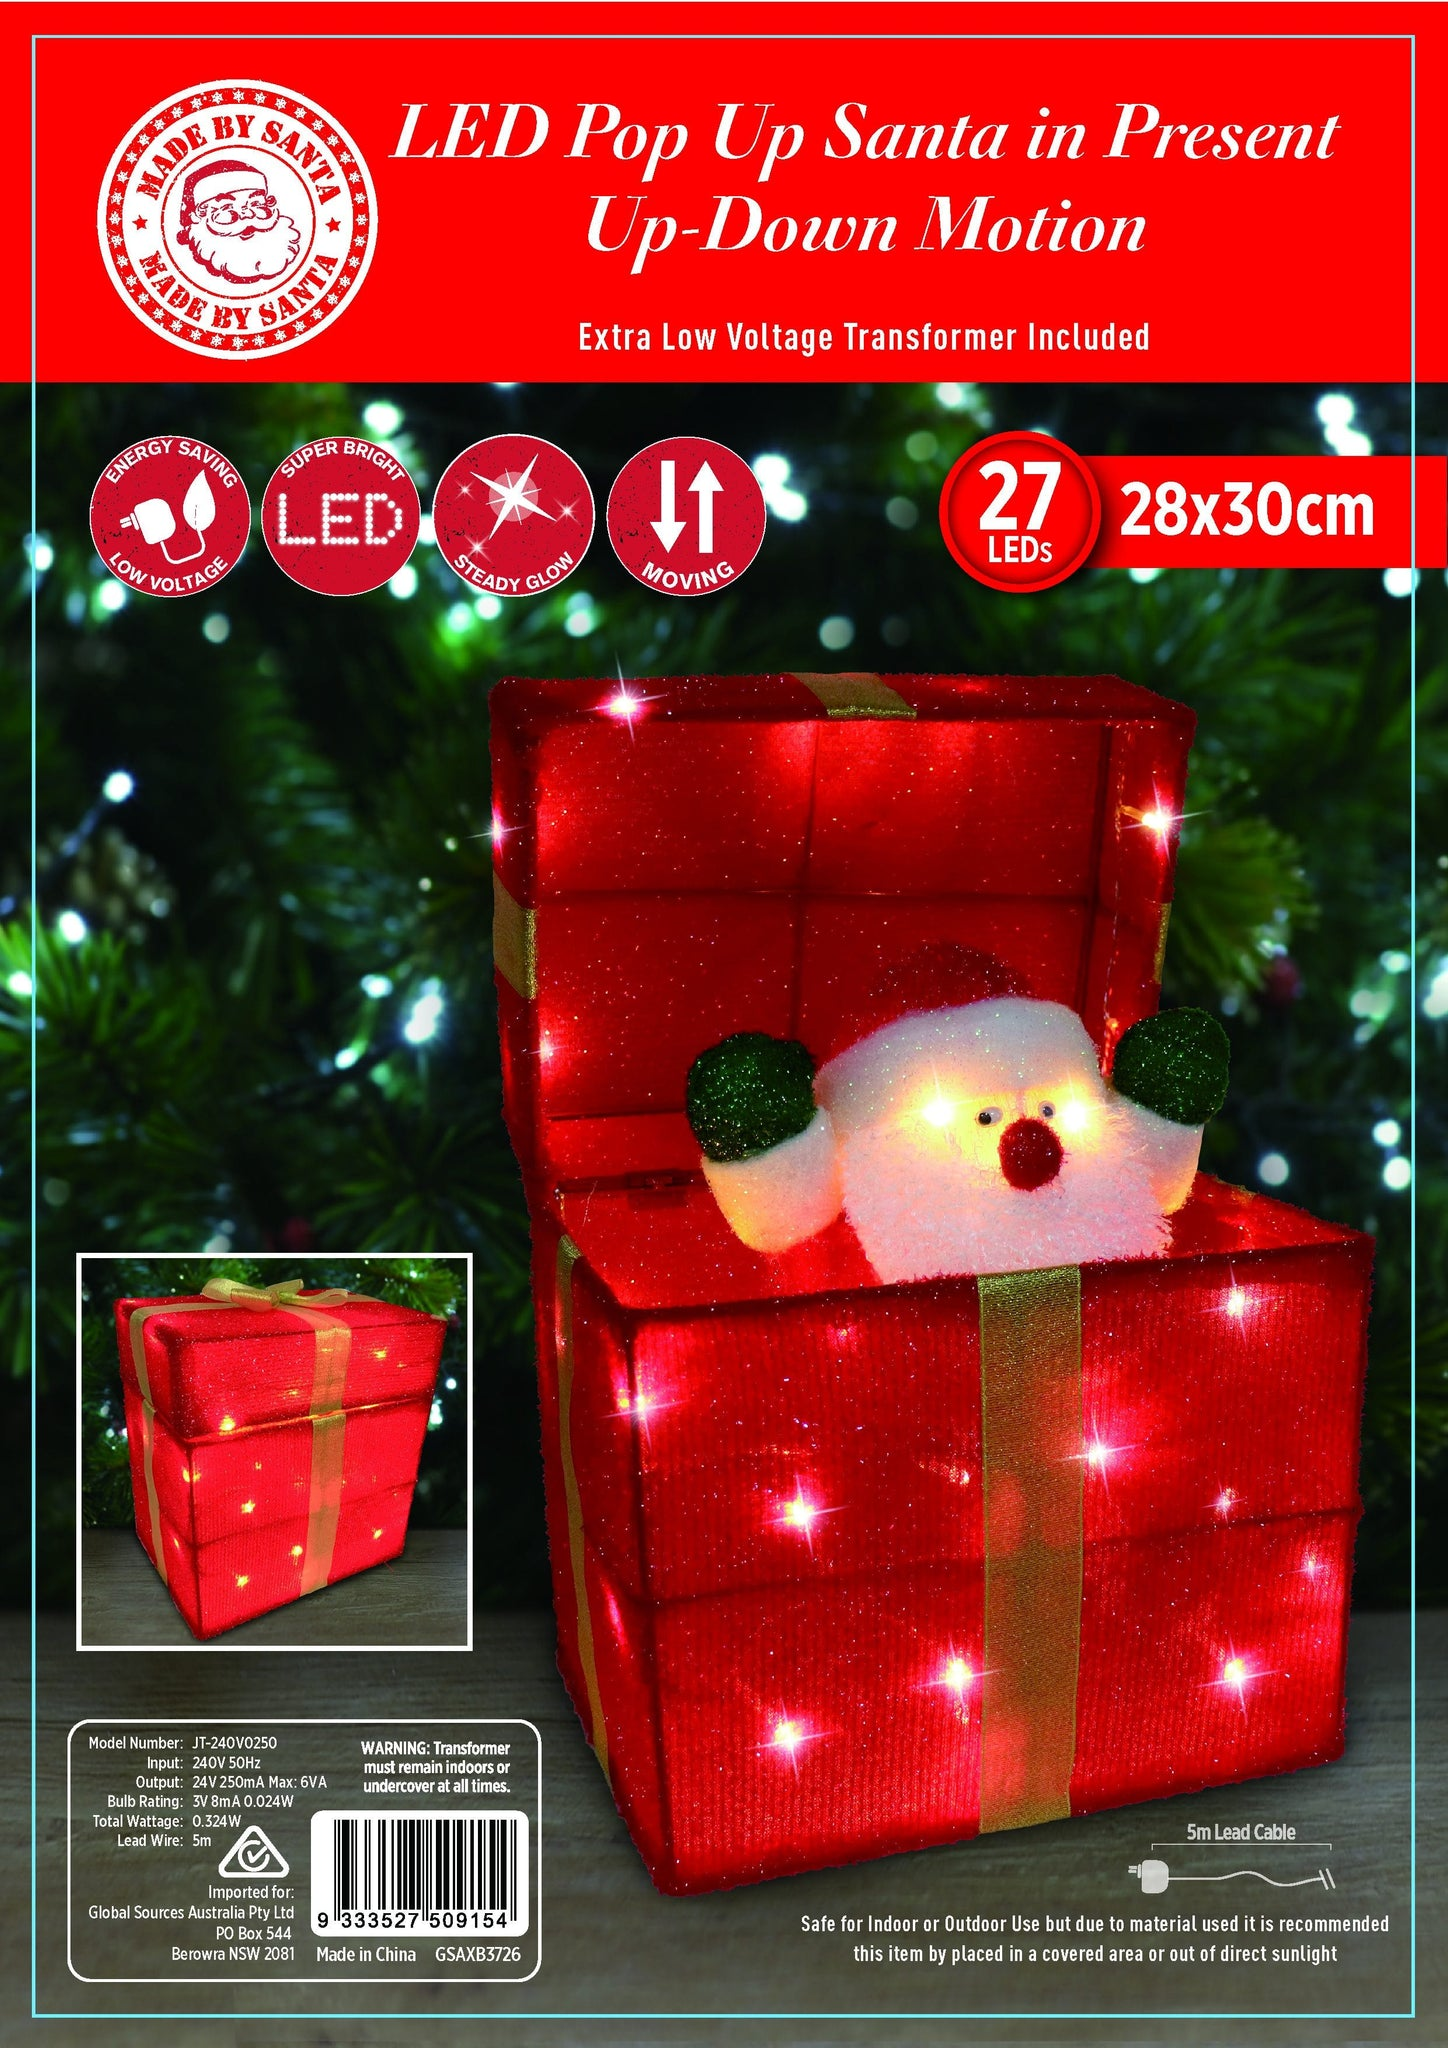 NEW ARRIVAL: LED TINSEL POP-UP SANTA PRESENT